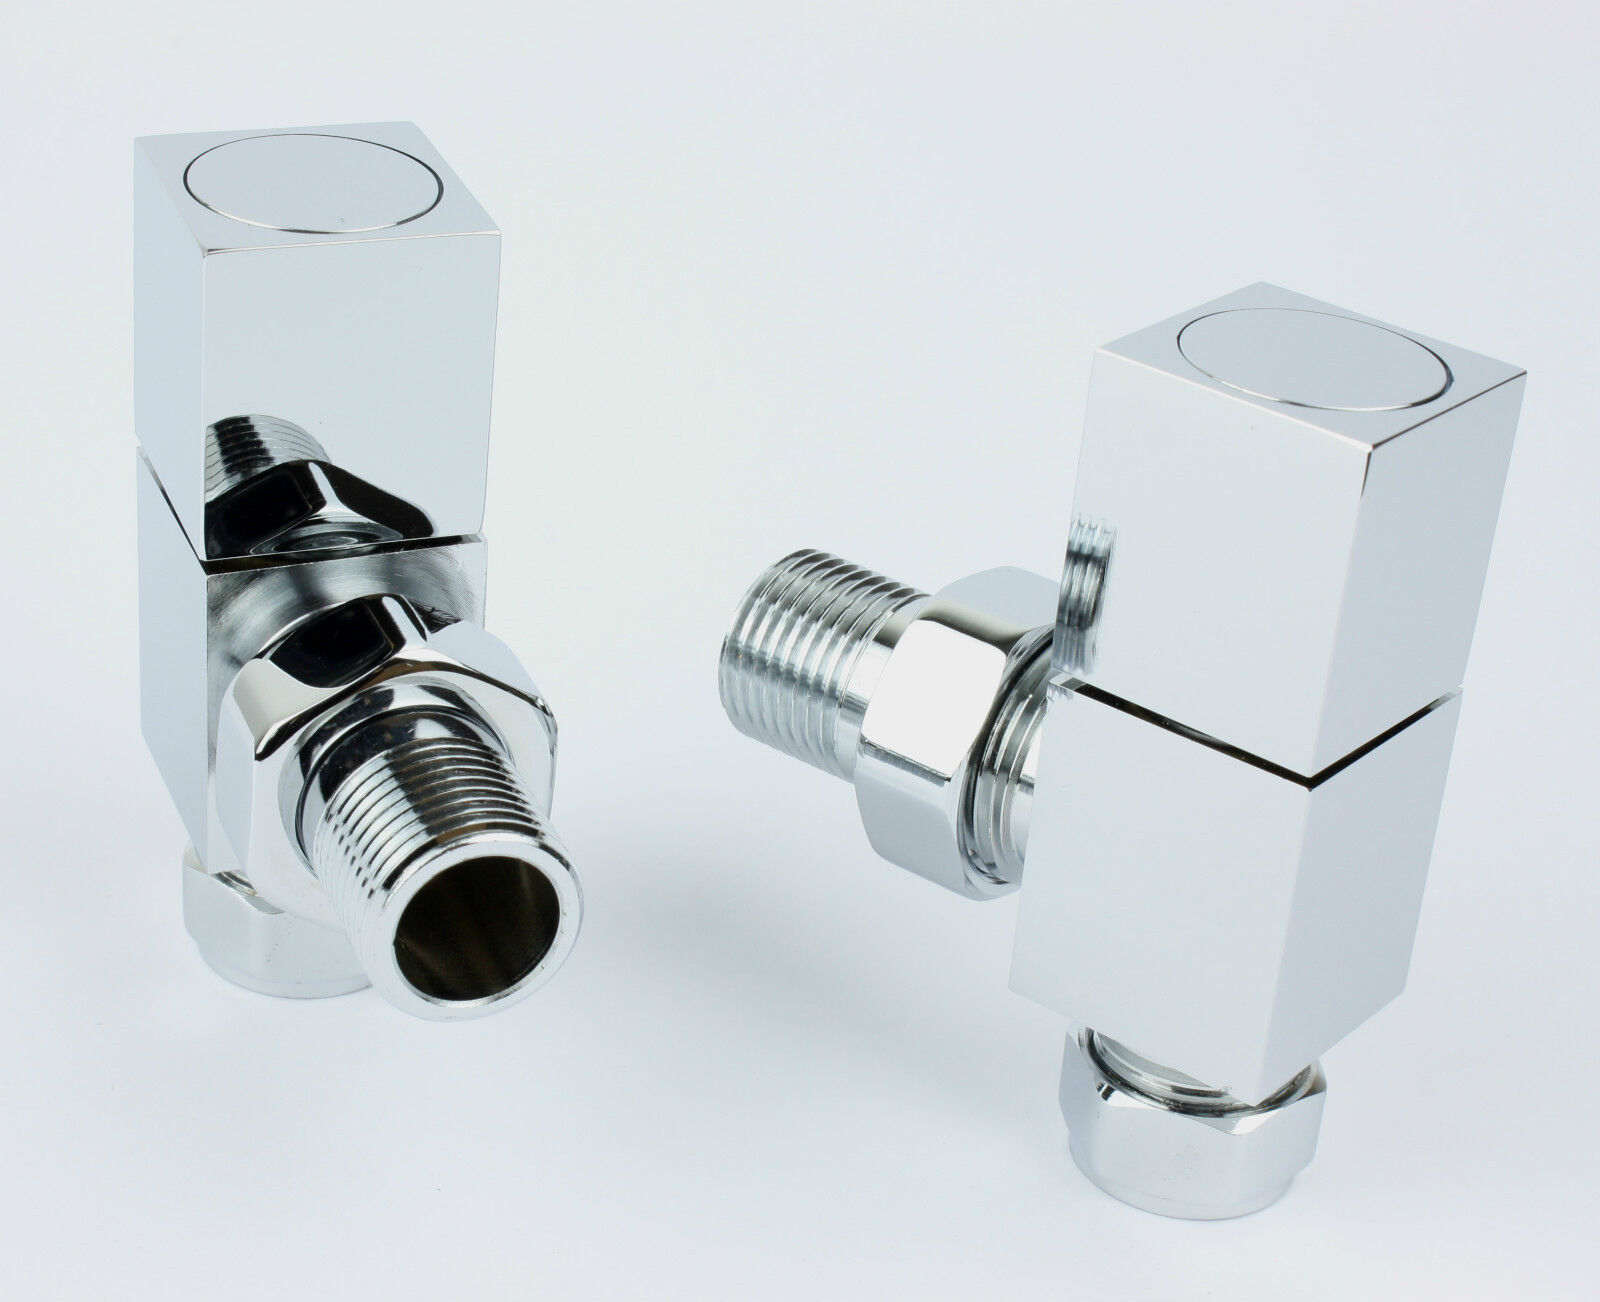 Brushed Chrome Bathroom Radiators: Chrome Valves Straight / Angled Or Corner Design Heated